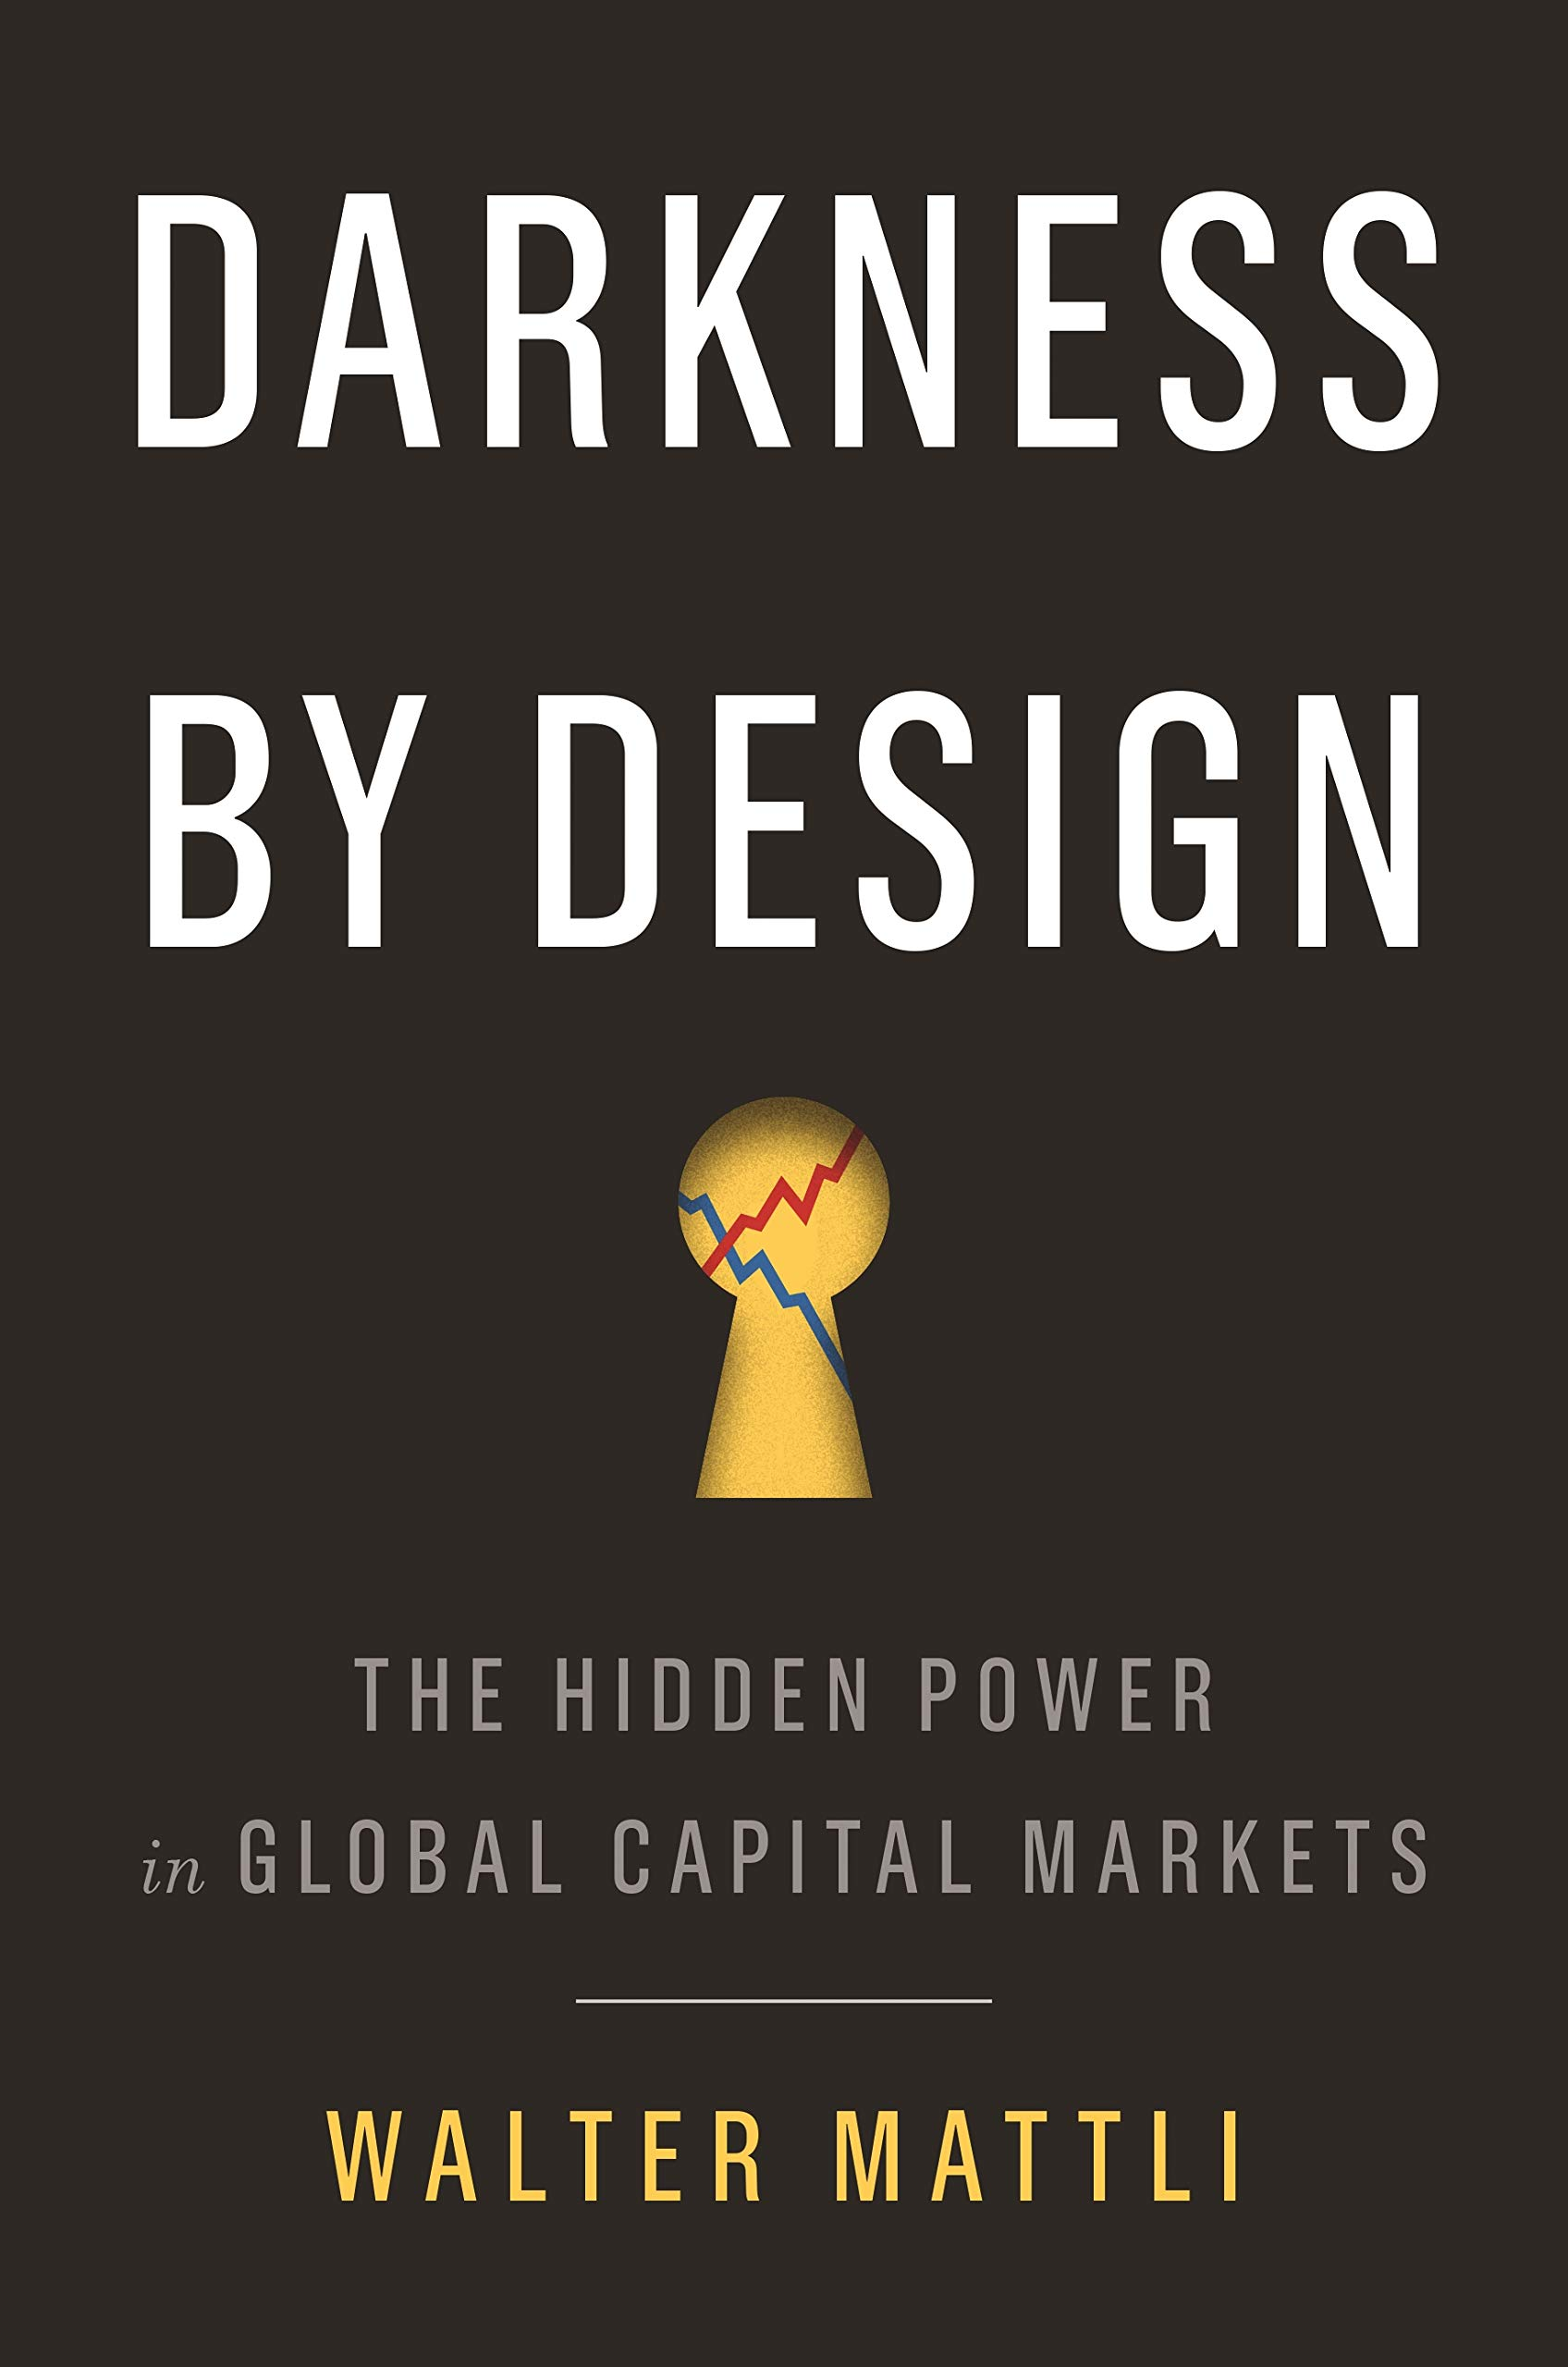 Download Darkness By Design: The Hidden Power In Global Capital Markets (English Edition) 